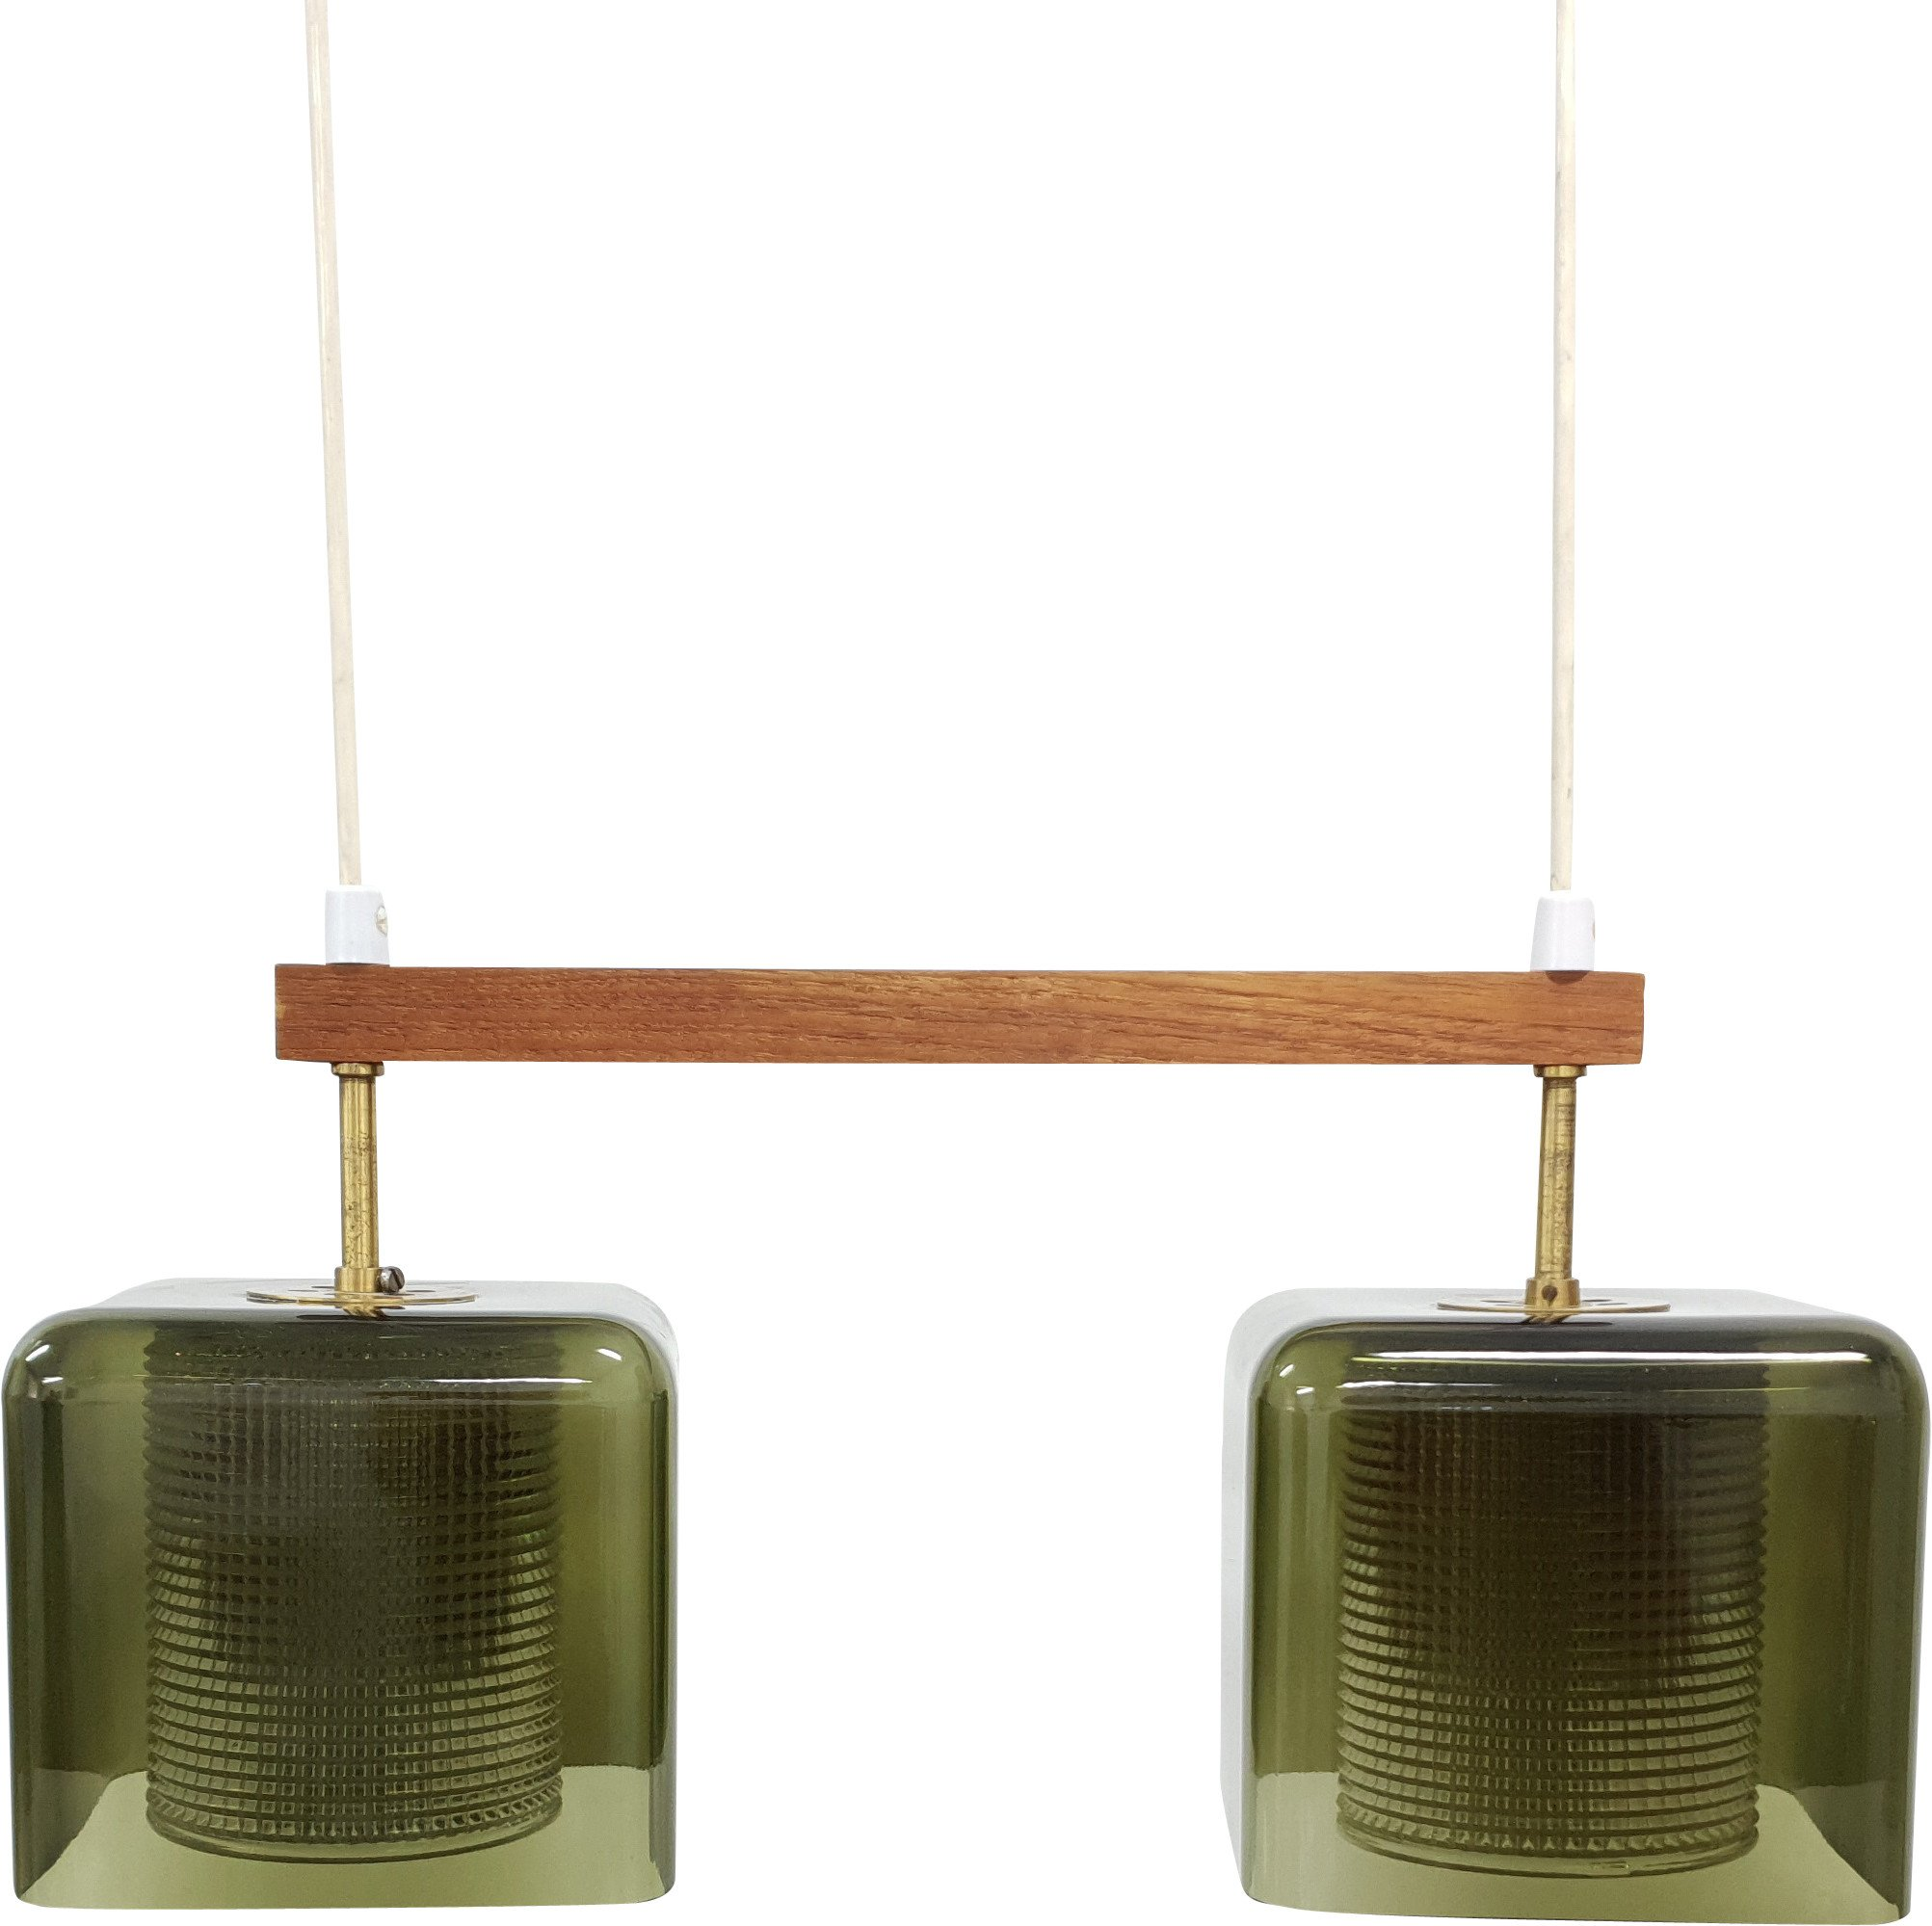 Pendant Lamp by C. Fagerlund for Orrefors, Sweden, 1960s